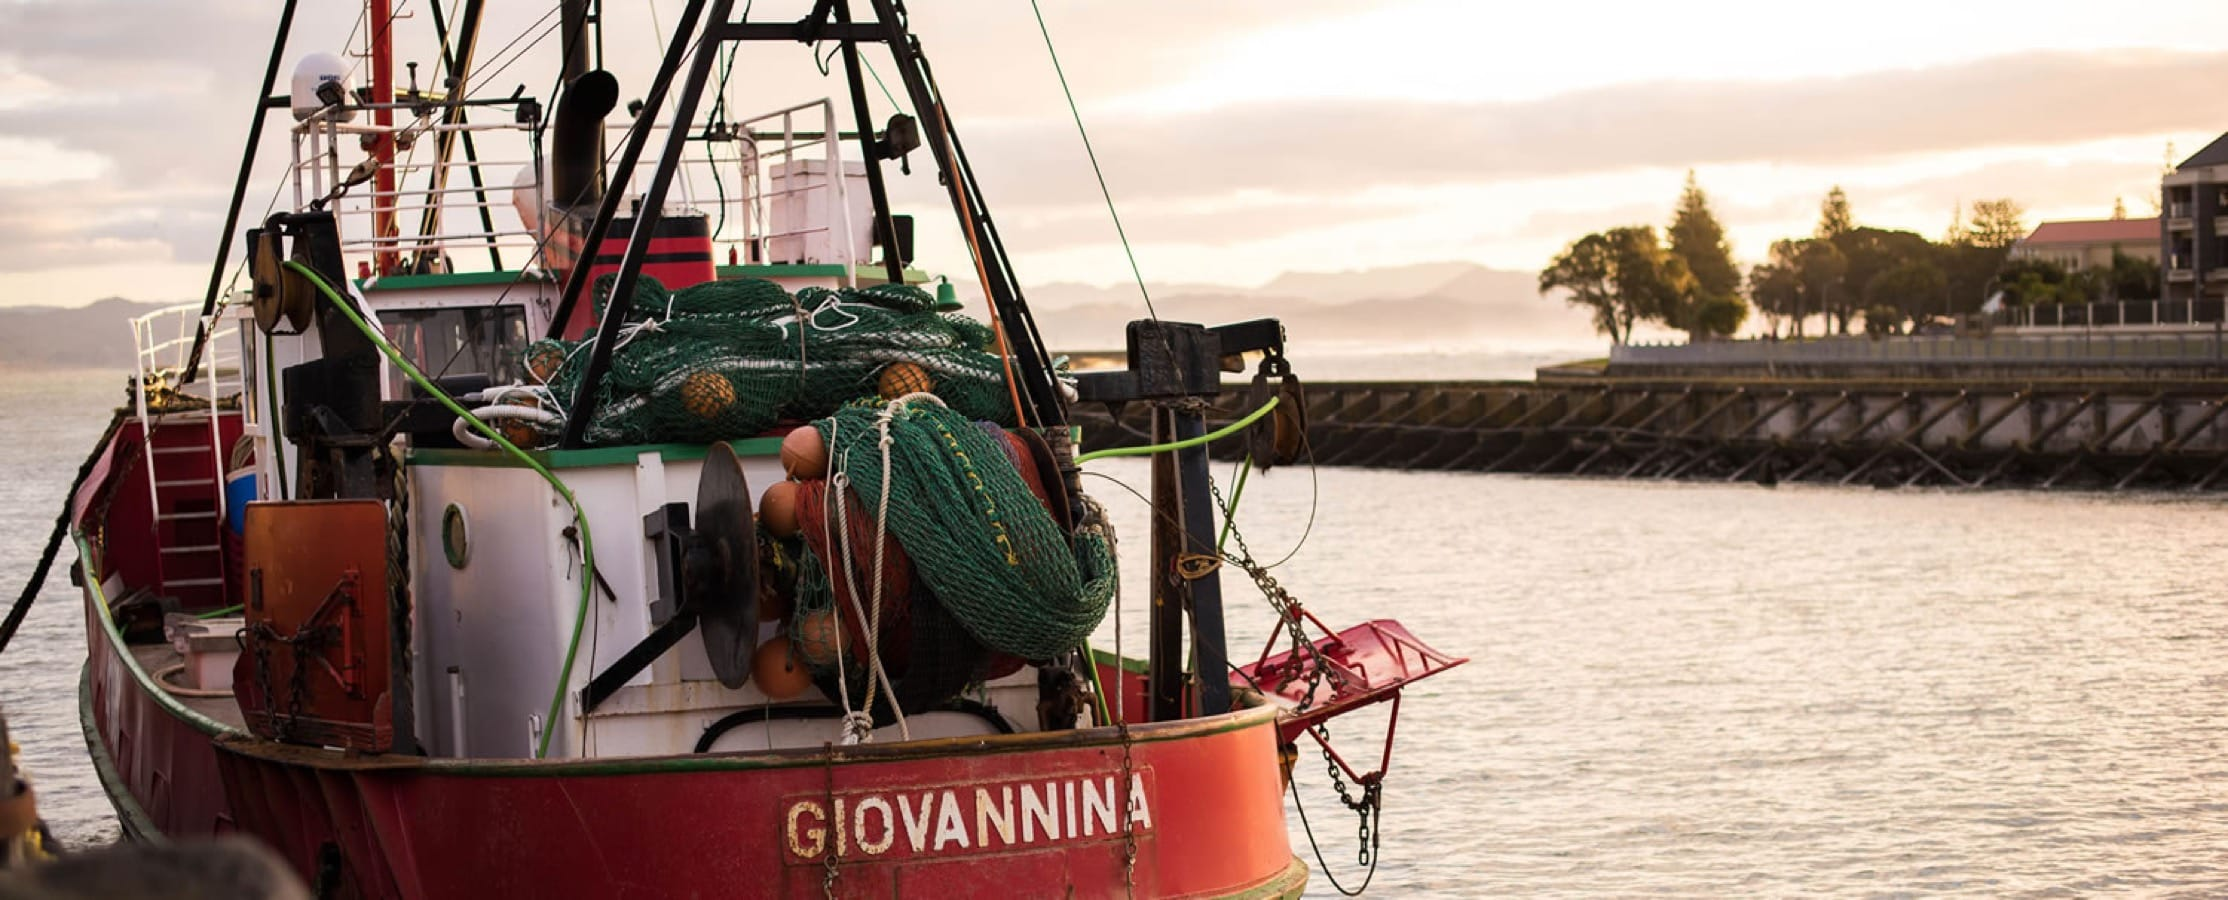 The fishing boat Giovannina